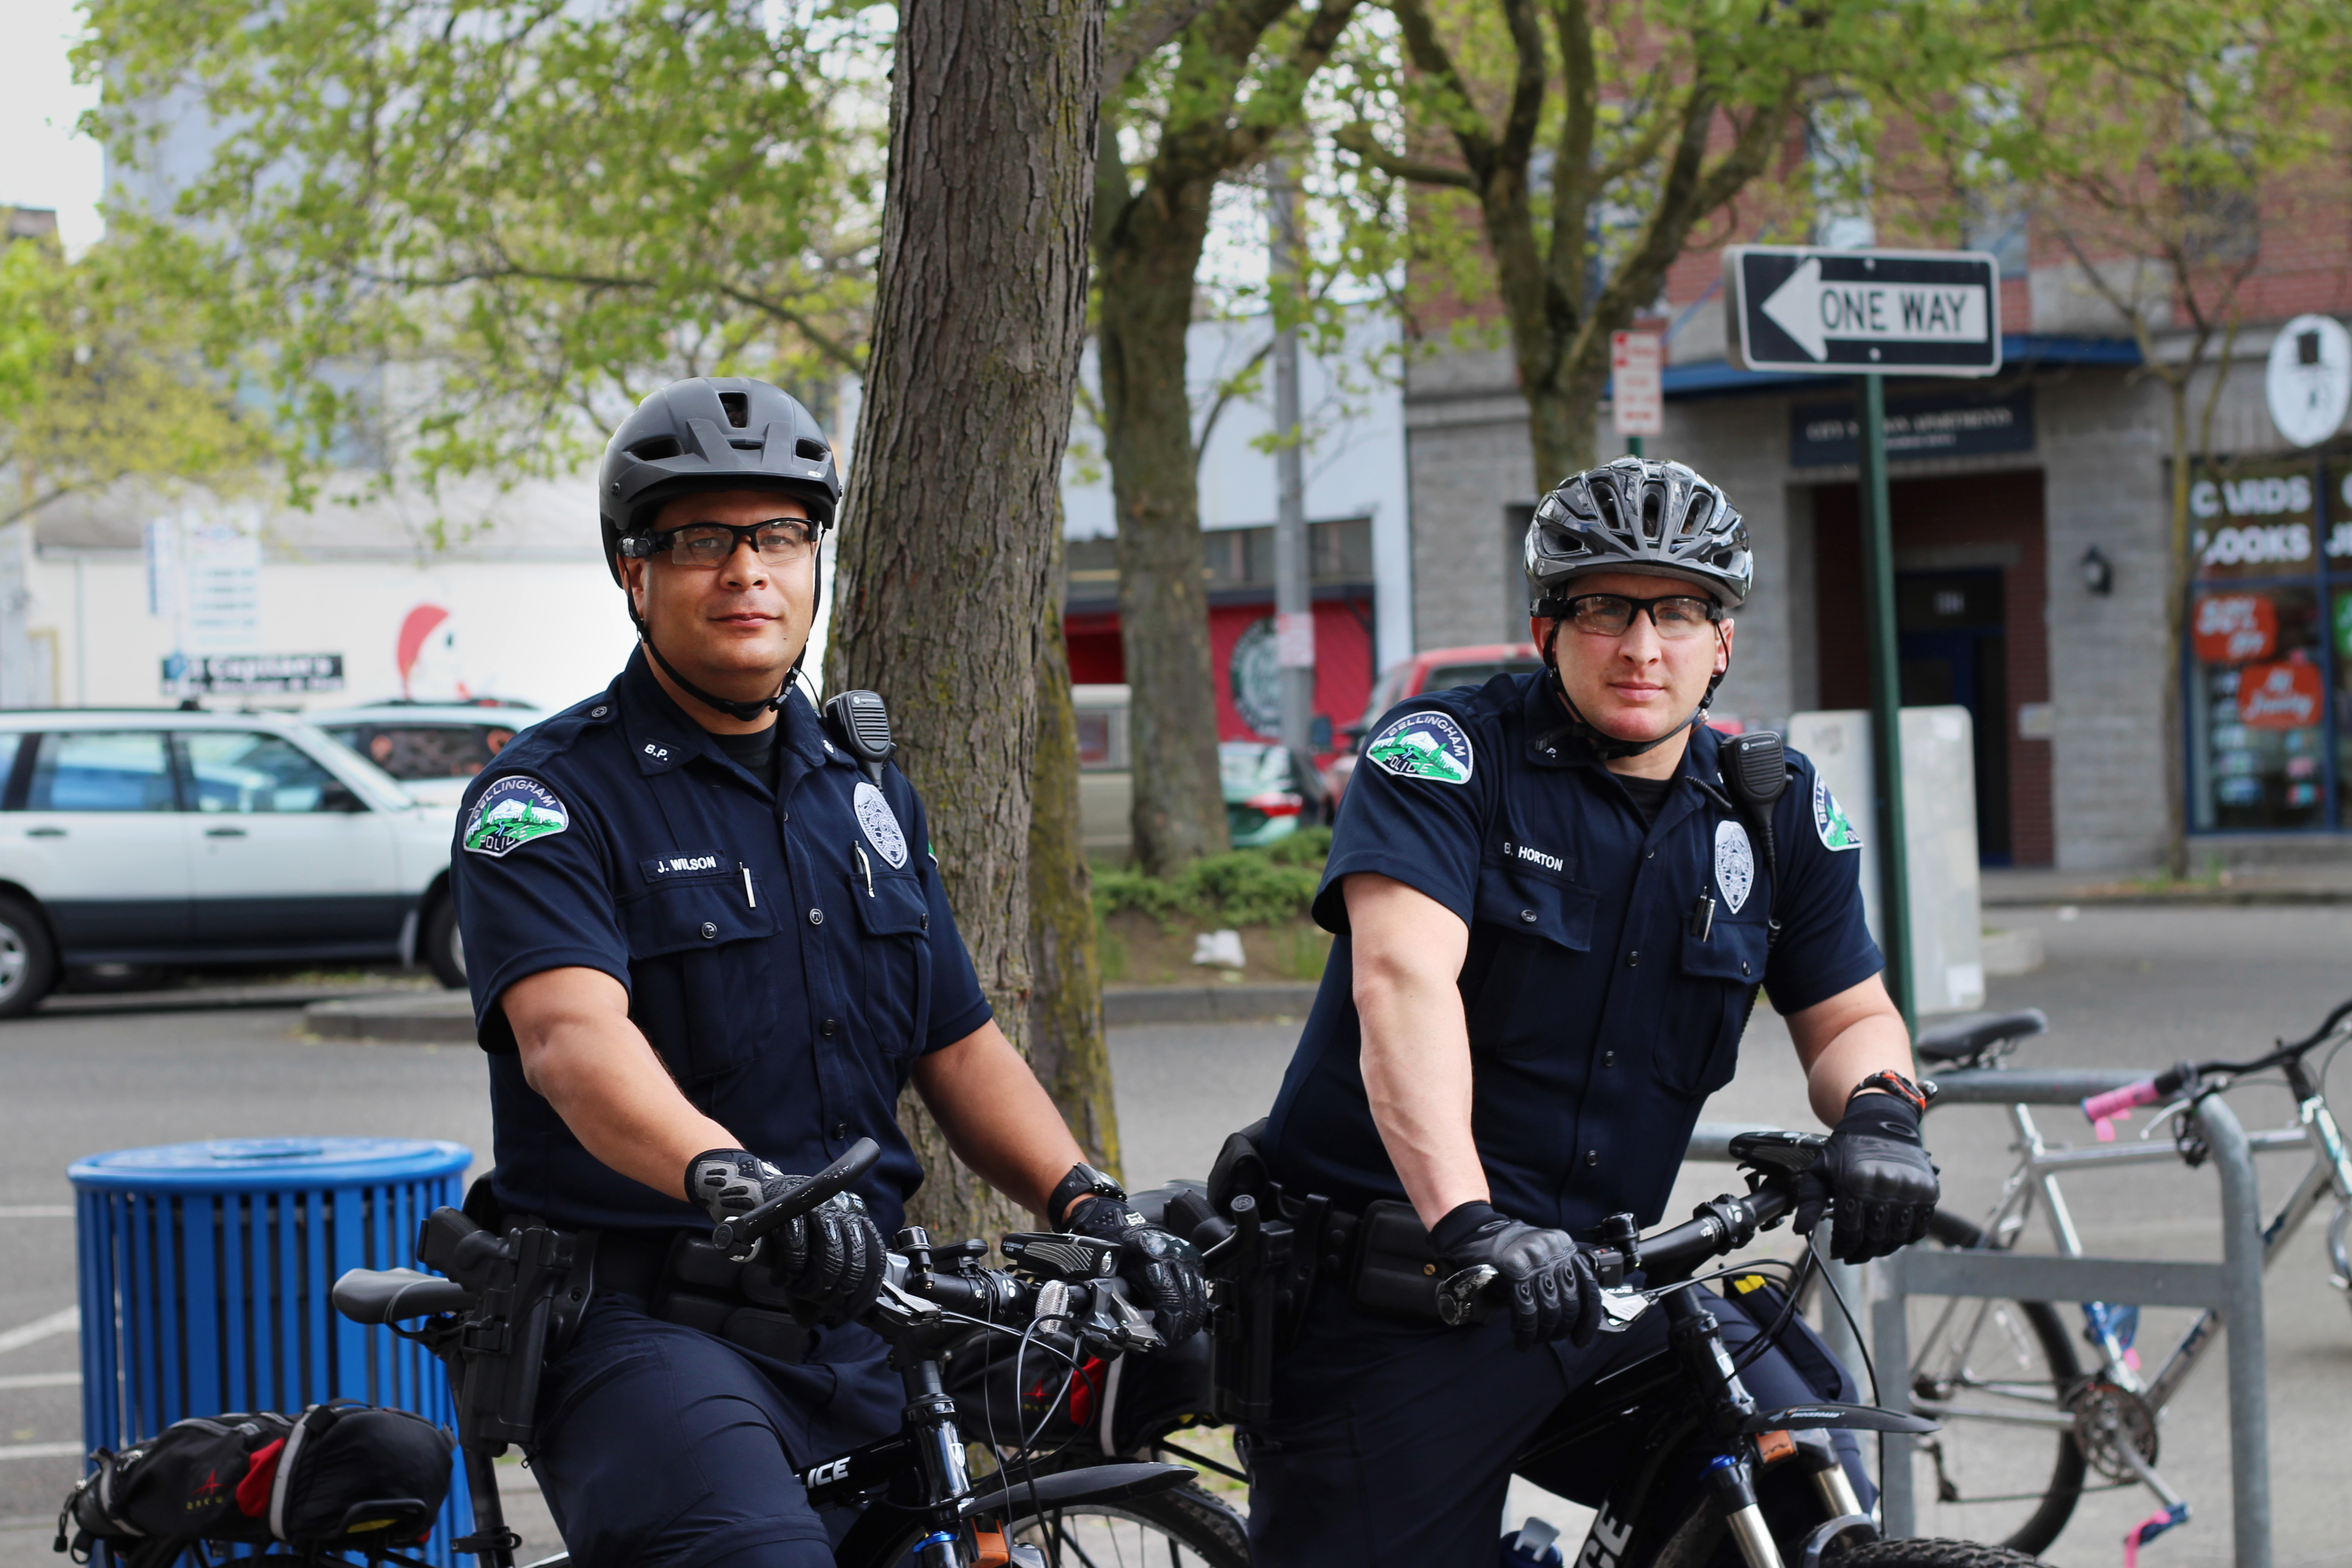 Bellingham, WA Police Bicycle Cops, Bellingham, Bellingham Police, Bellingham Police Car, Bellingham Police Department, HQ Photo